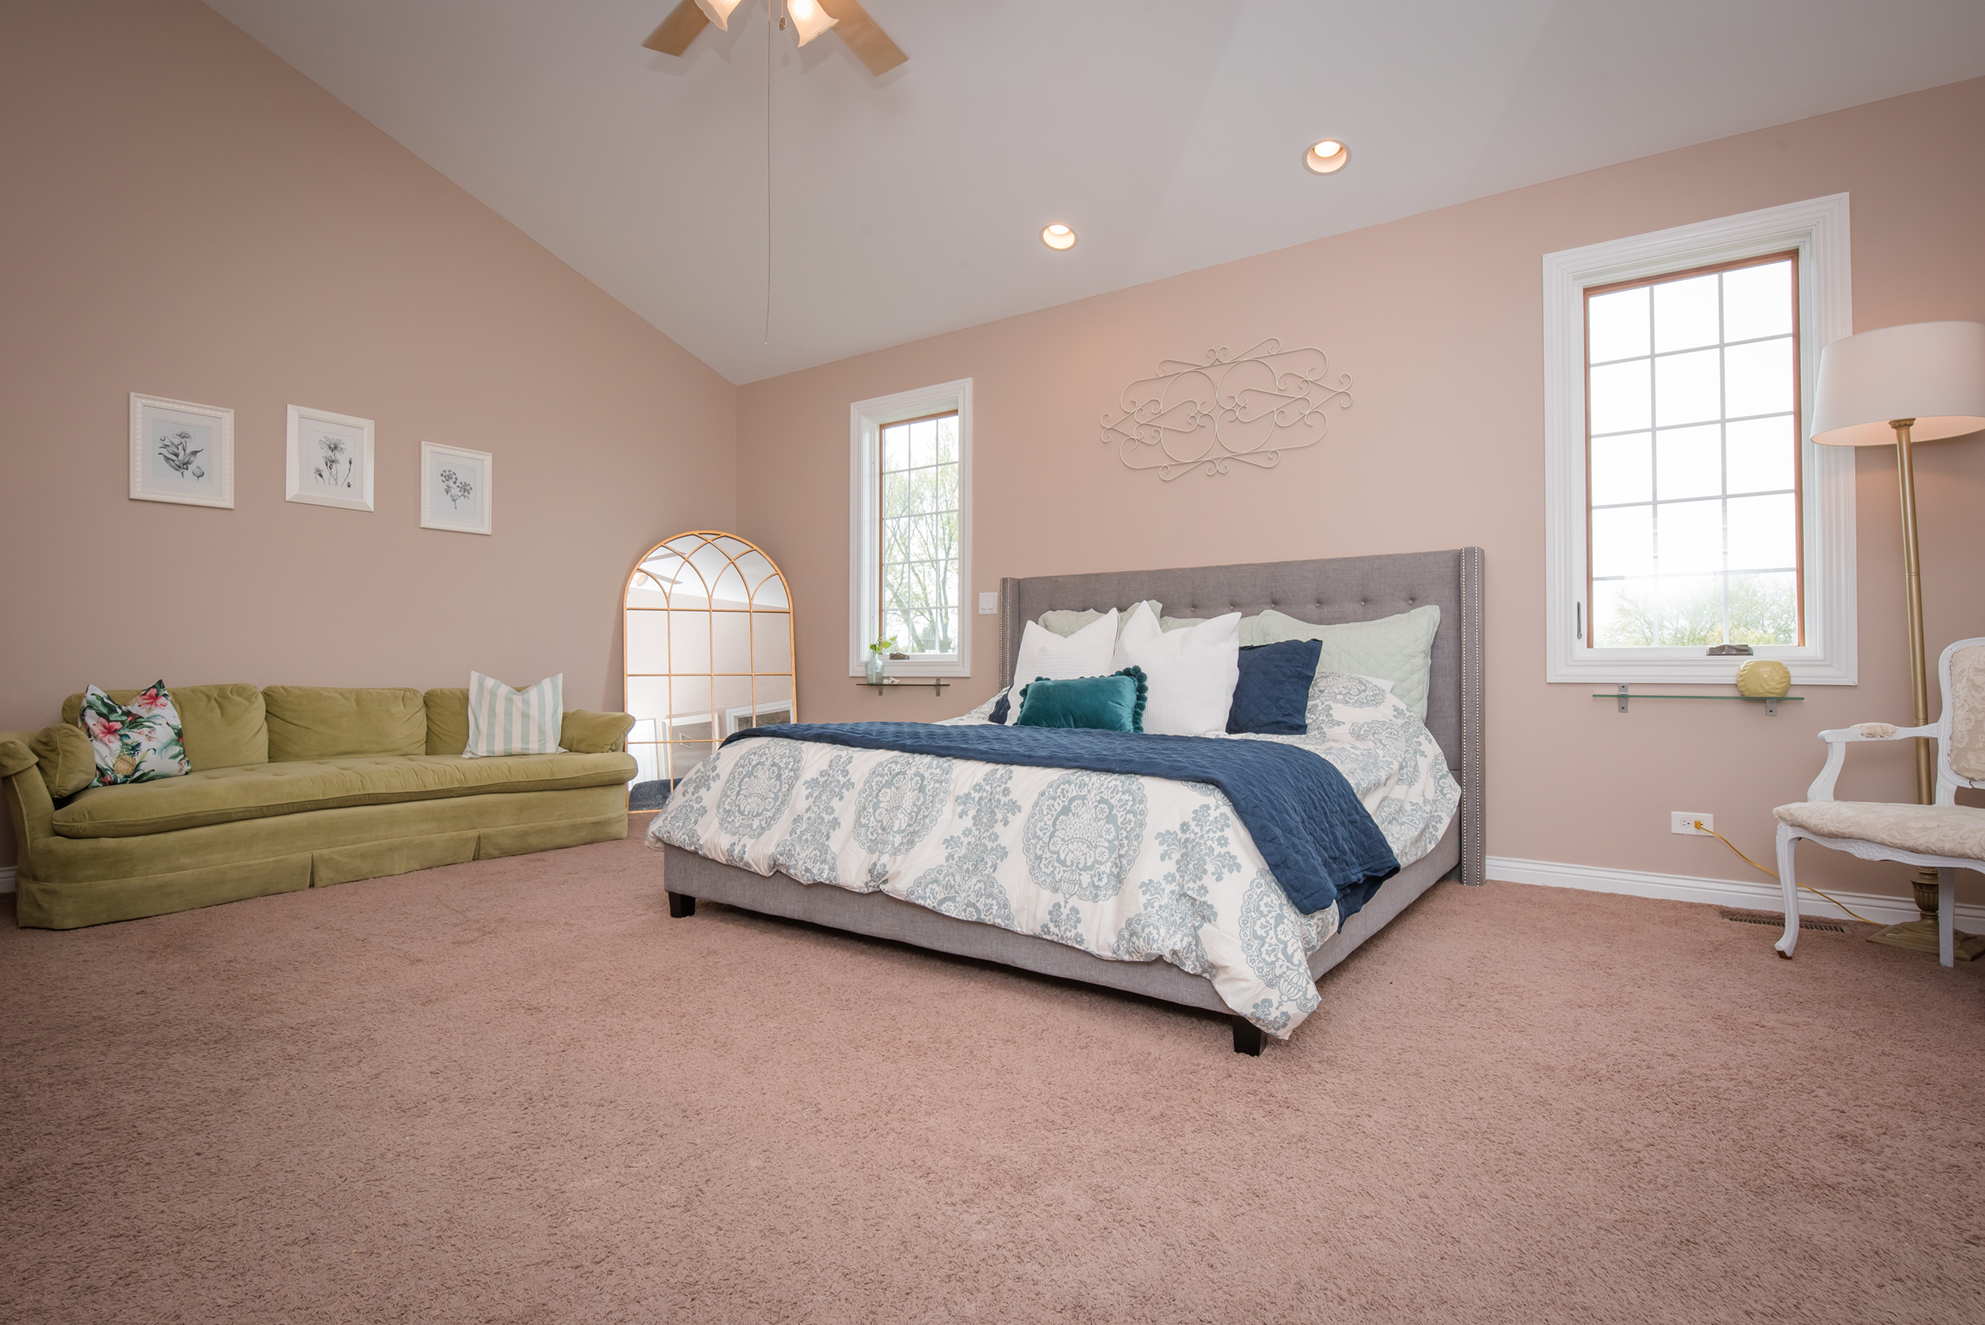 Master Bedroom - Make the bed and use those throw pillowsRemove any personal items or photosMake sure you don't see anything stored under the bedClear the nightstands